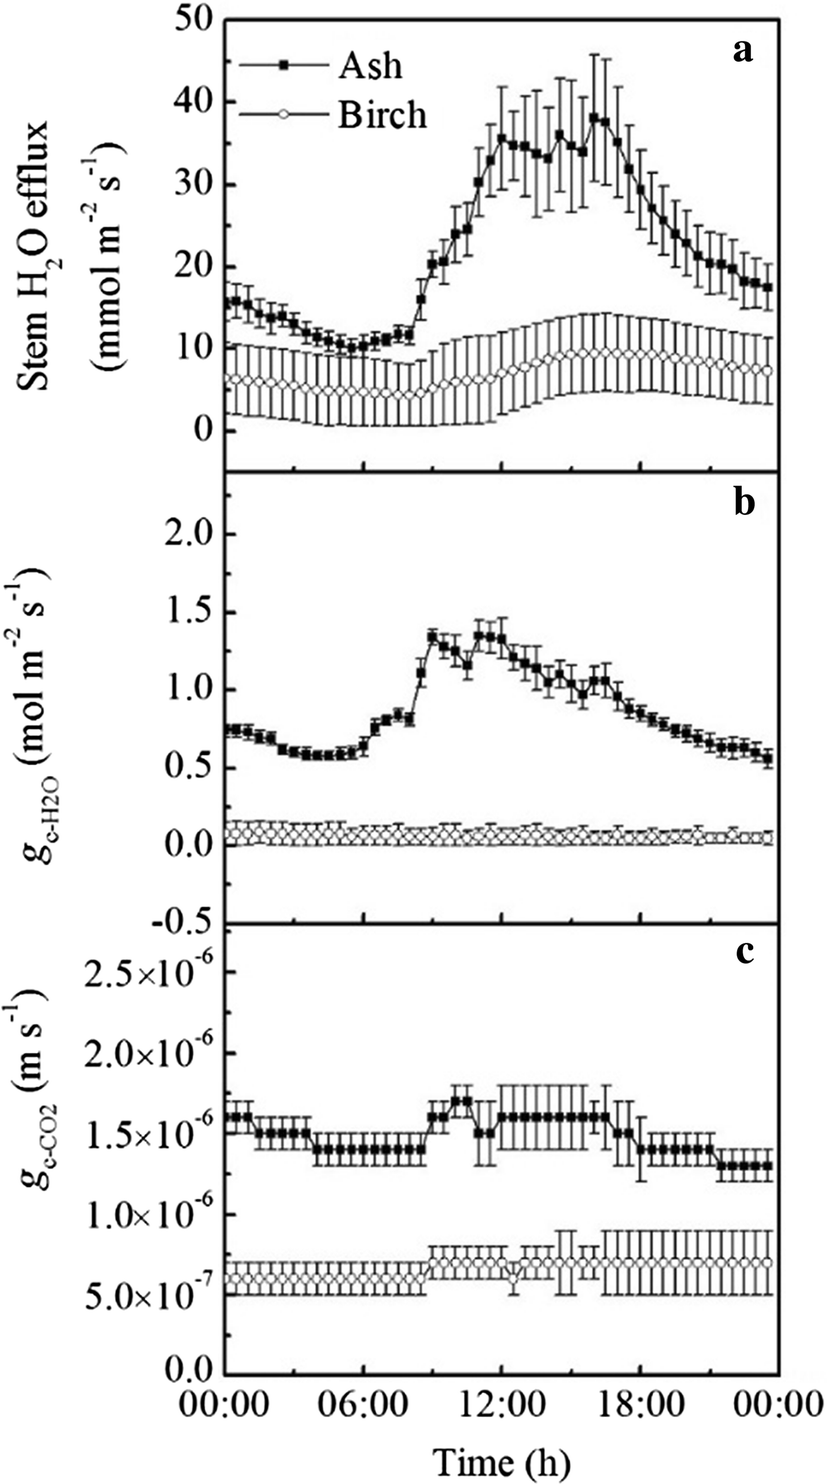 11676_2018_737_Fig1_HTML stem radial co2 conductance affects stem respiratory co2 fluxes in